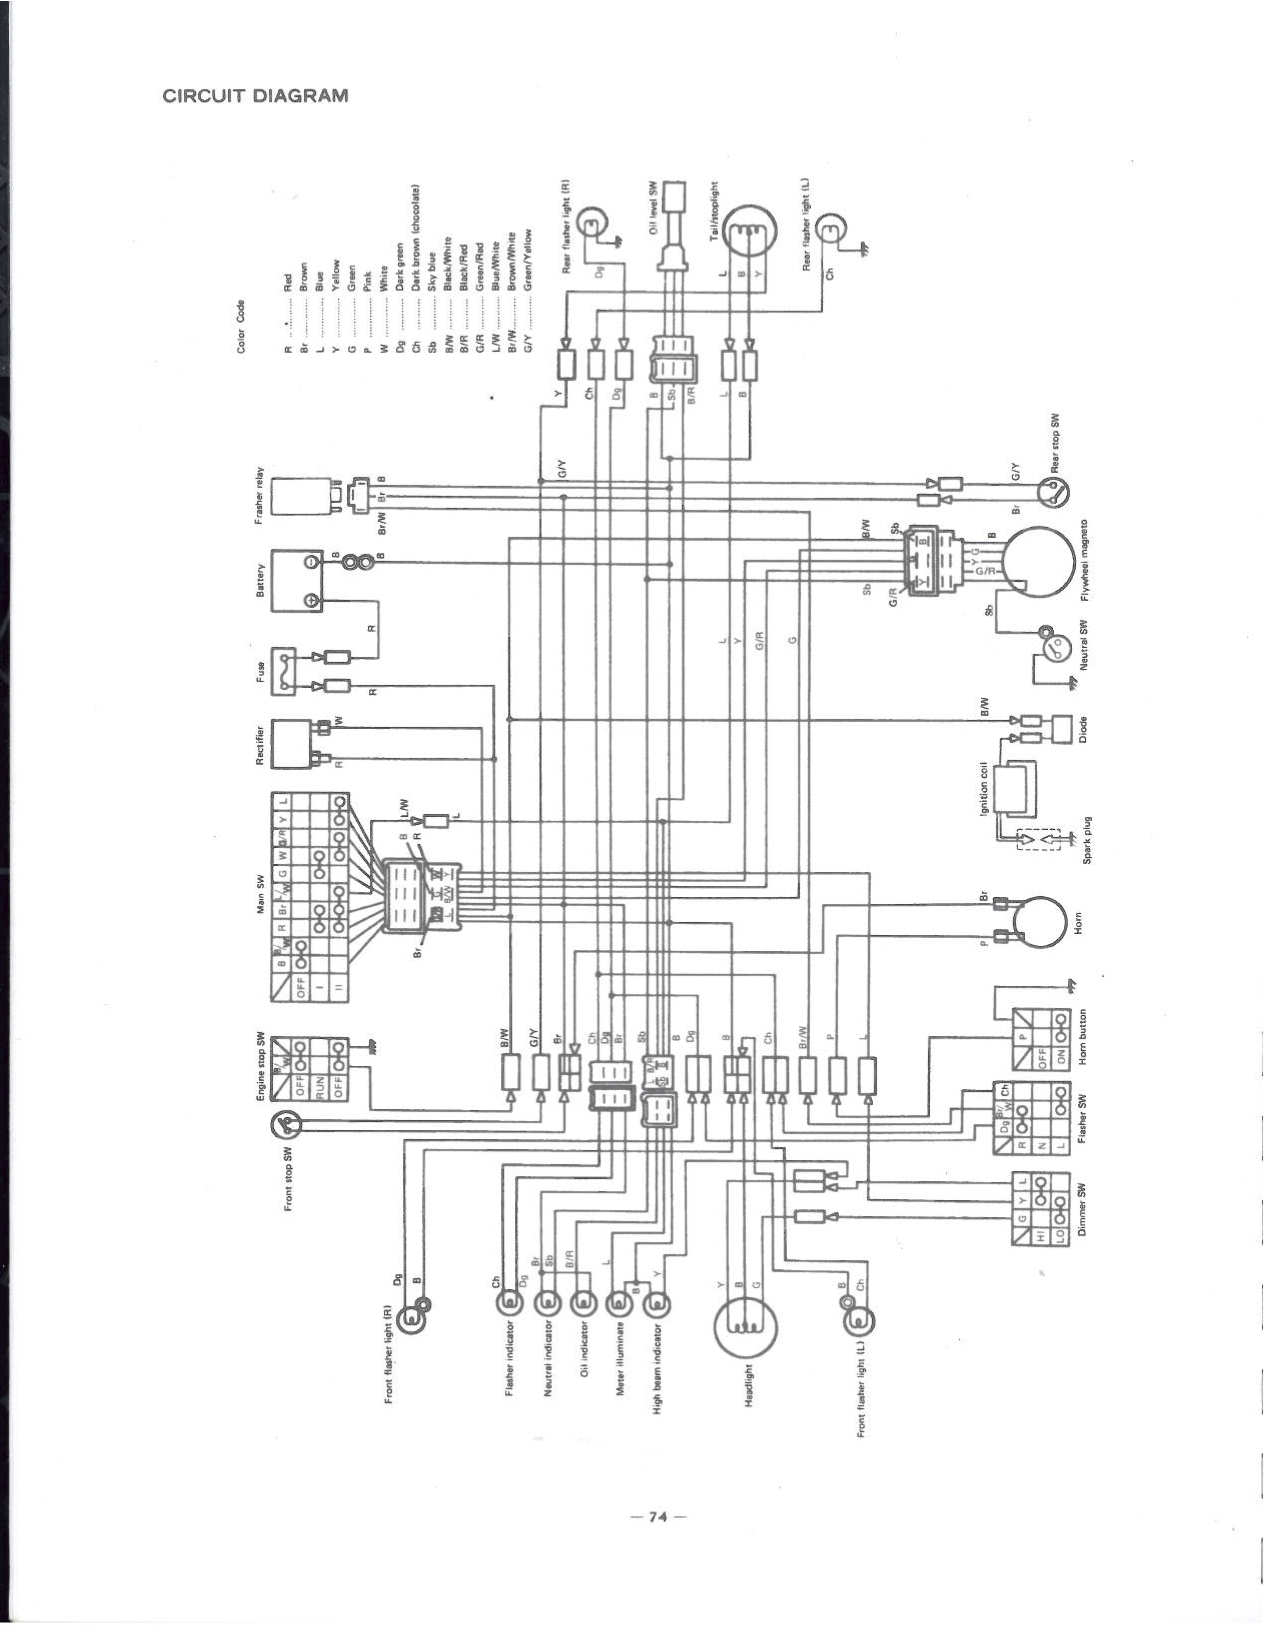 1985 ford mustang tachometer wiring